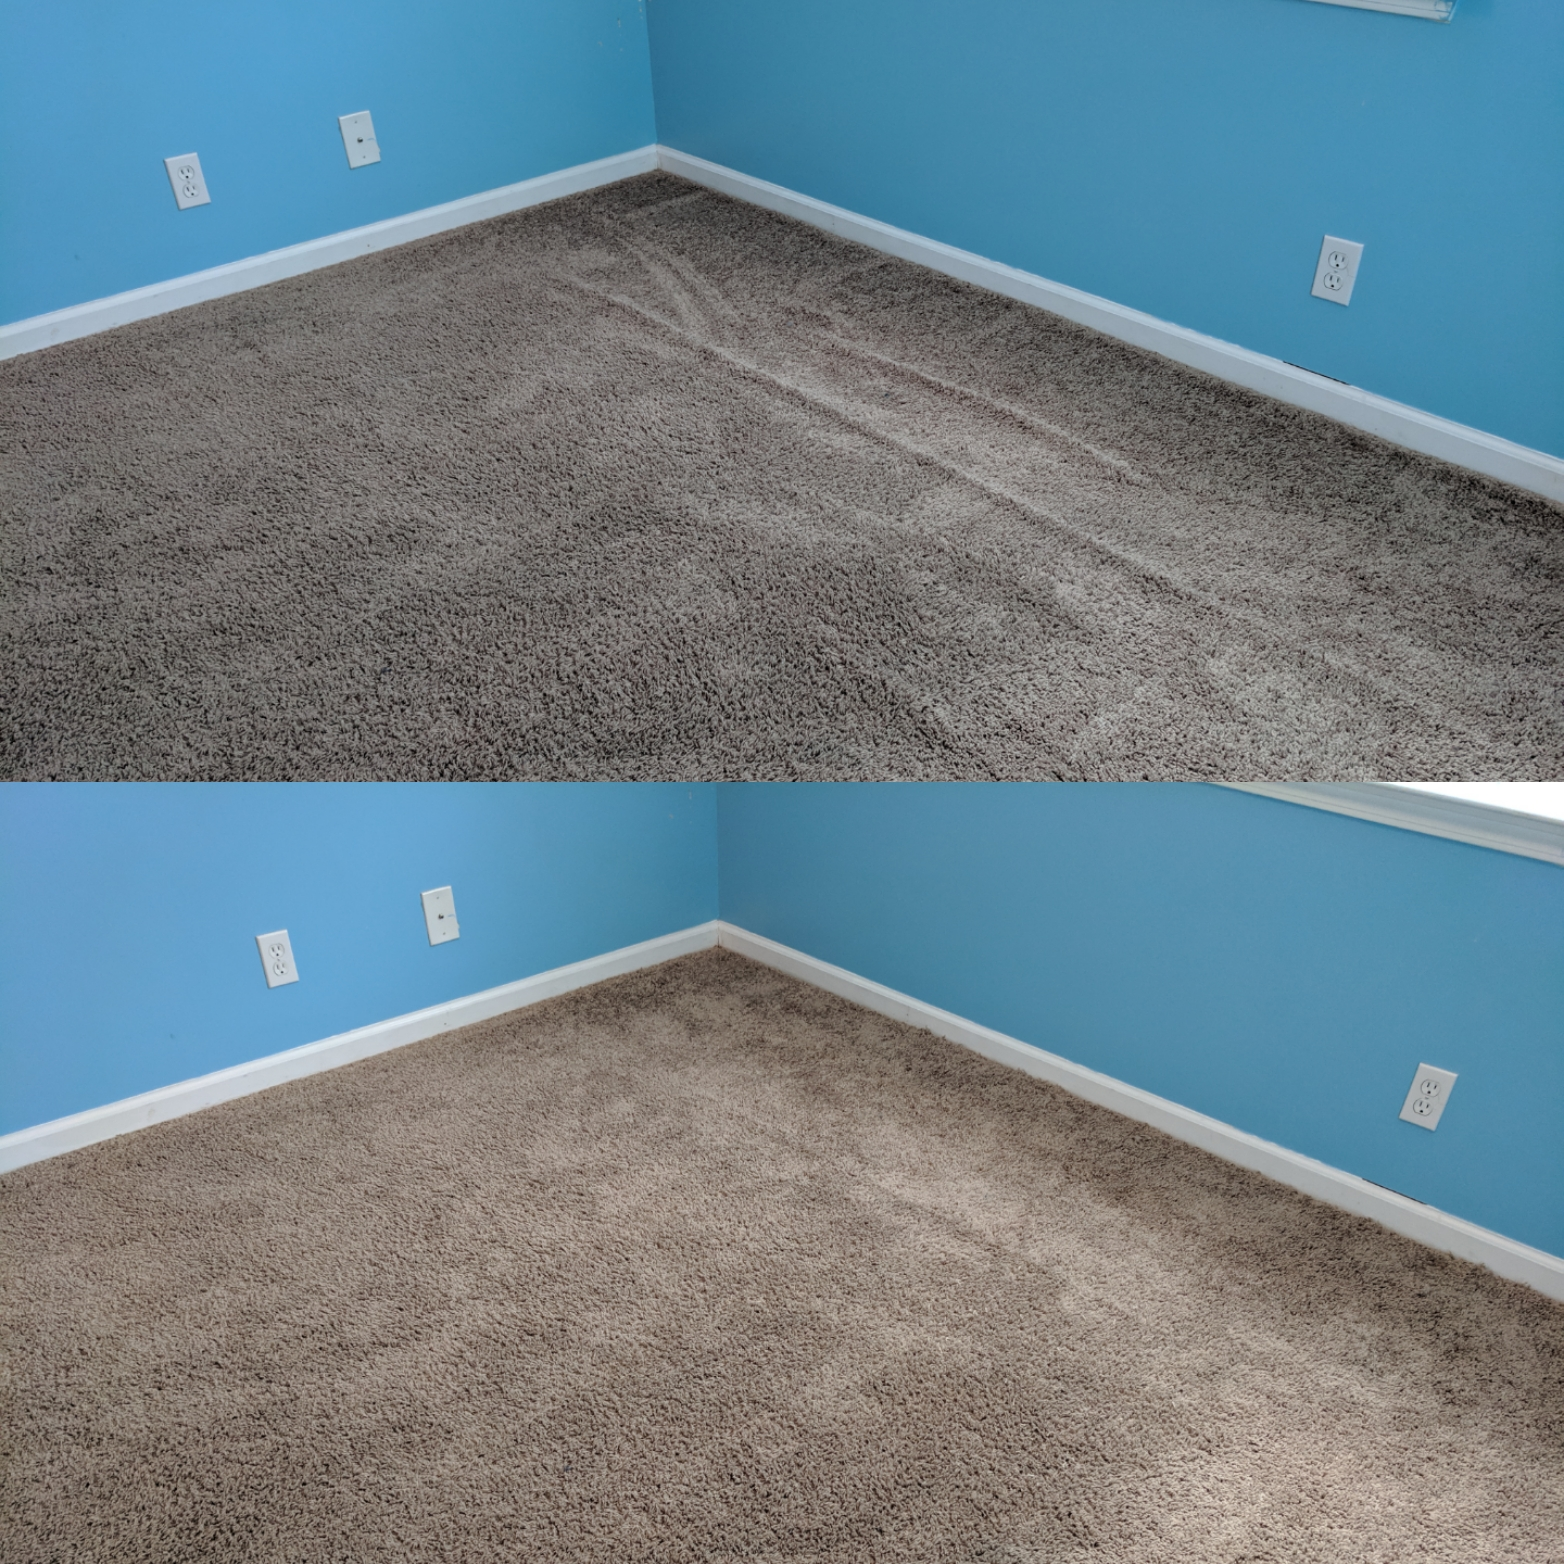 Carpet Stretching Amp Carpet Repairs In The Fort Worth Tx Area